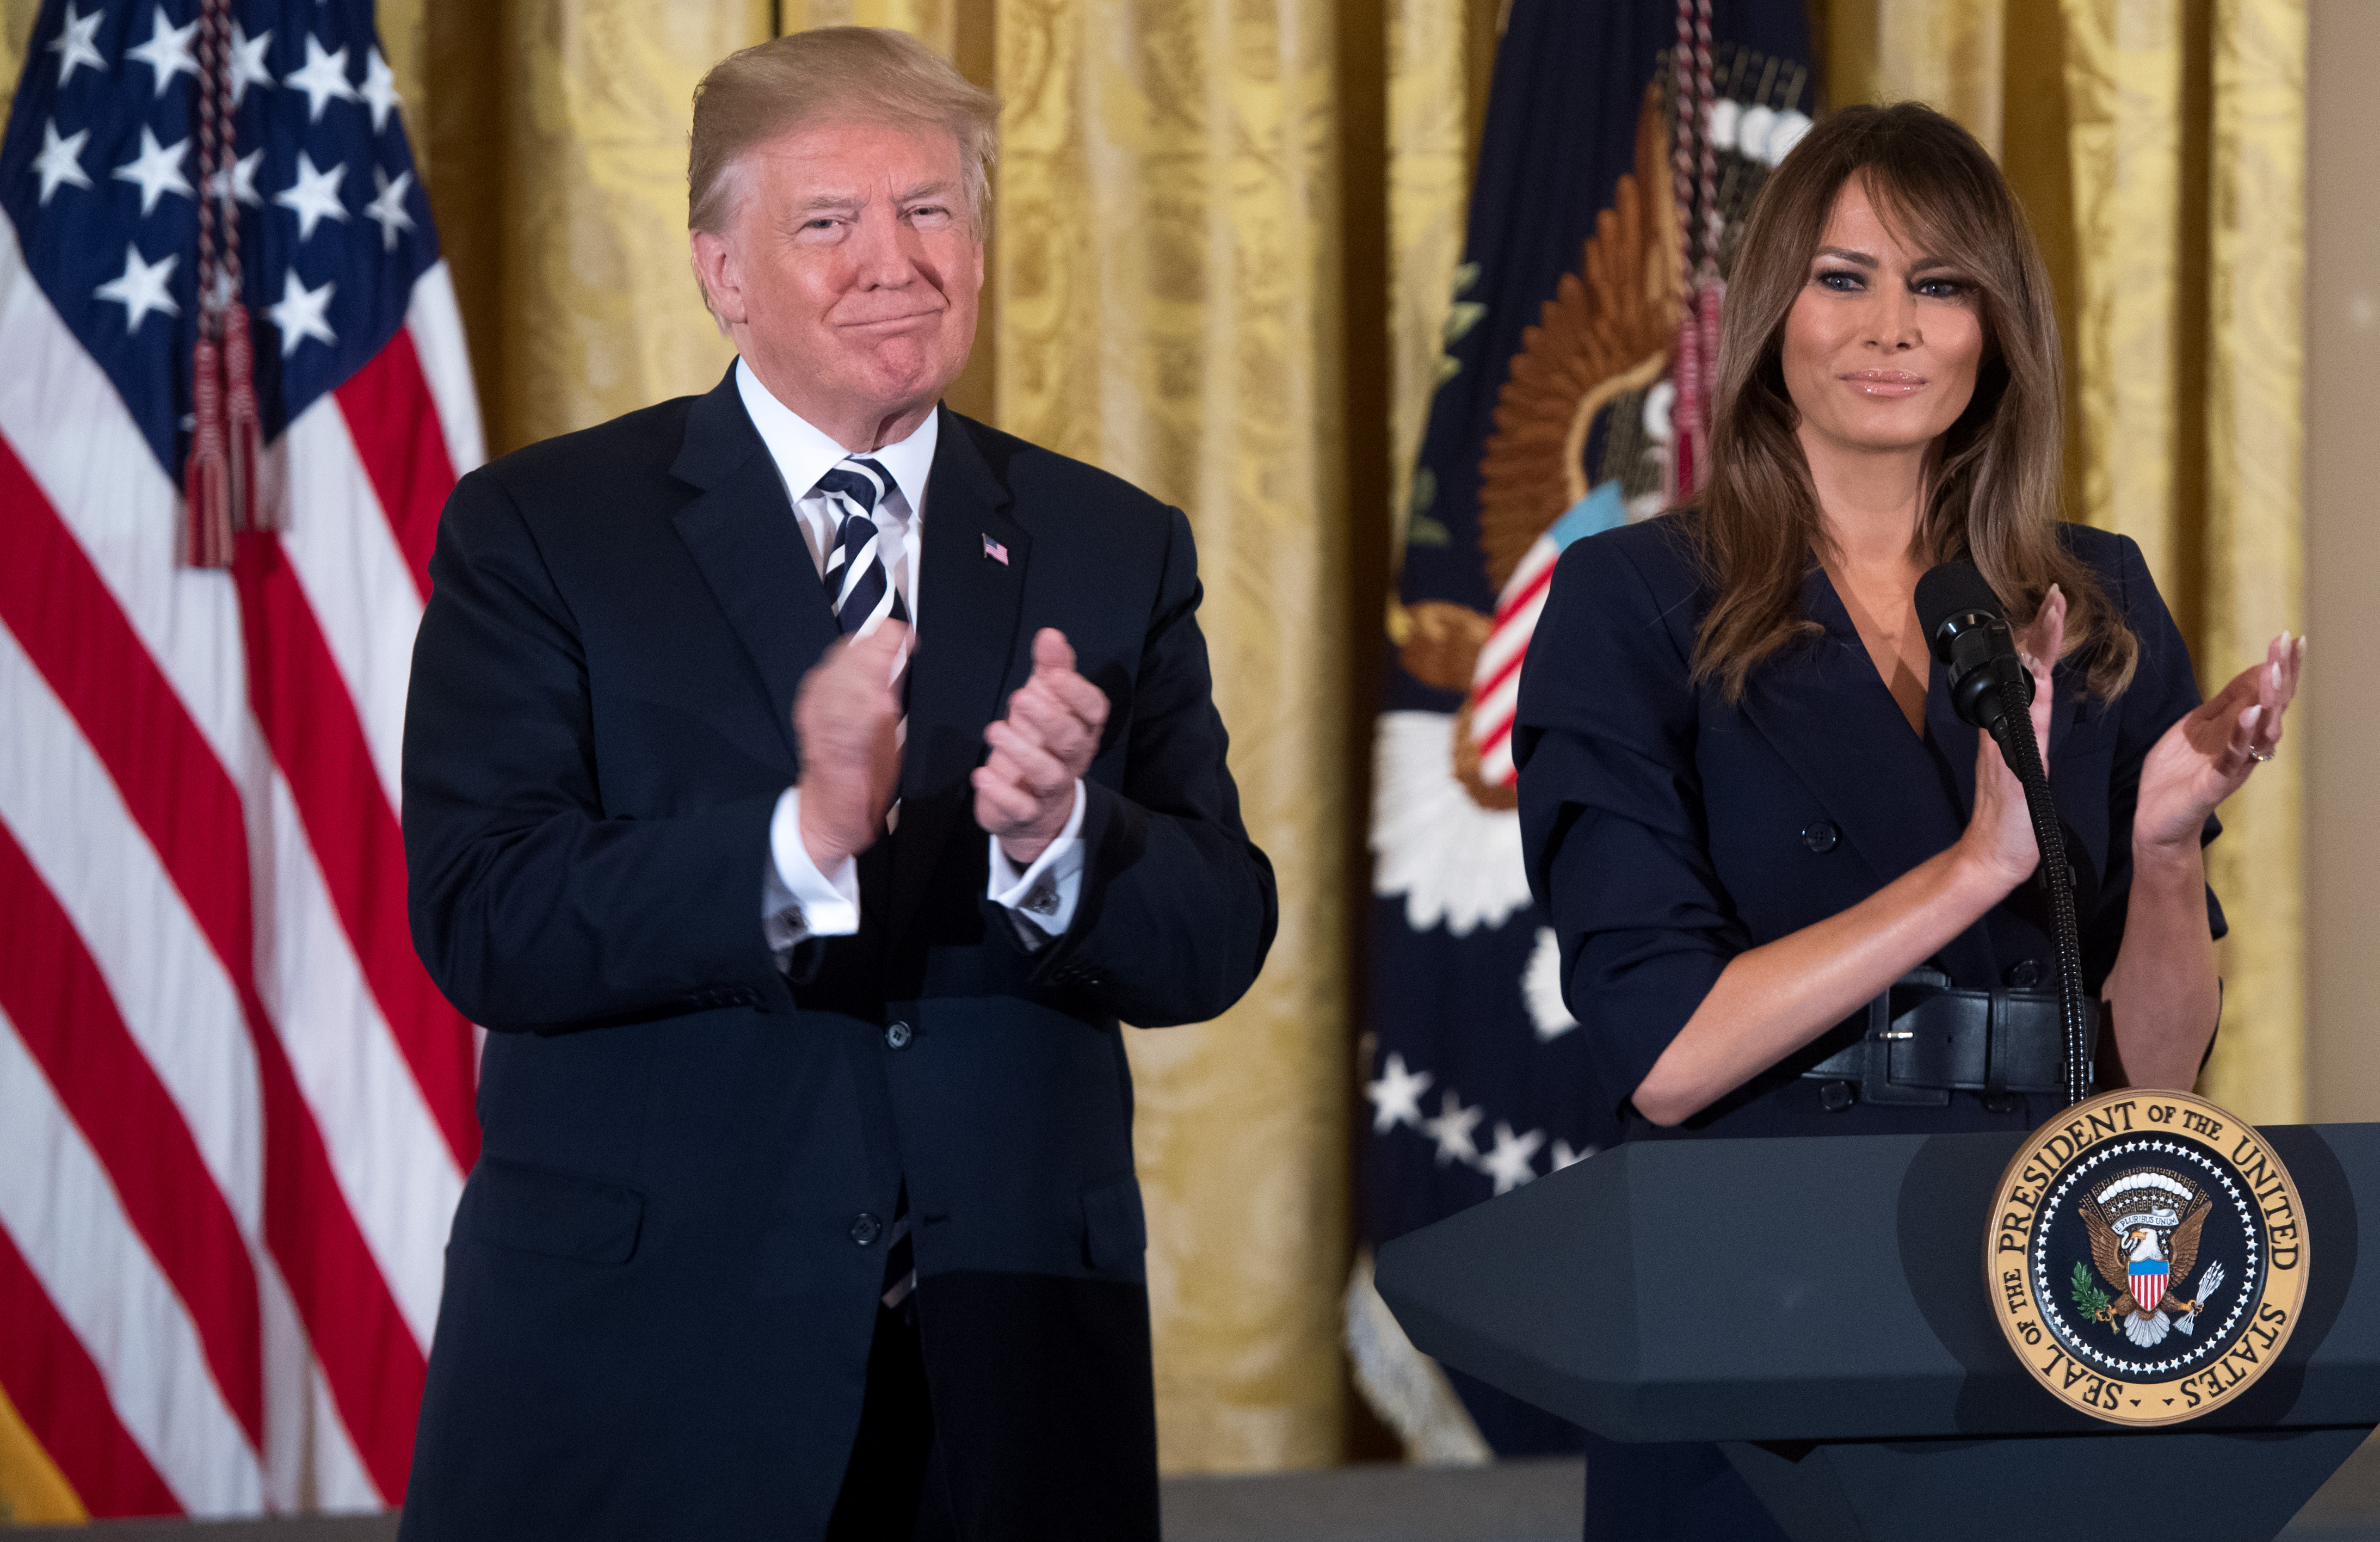 Kidney embolization: What was Melania Trump's surgery for?